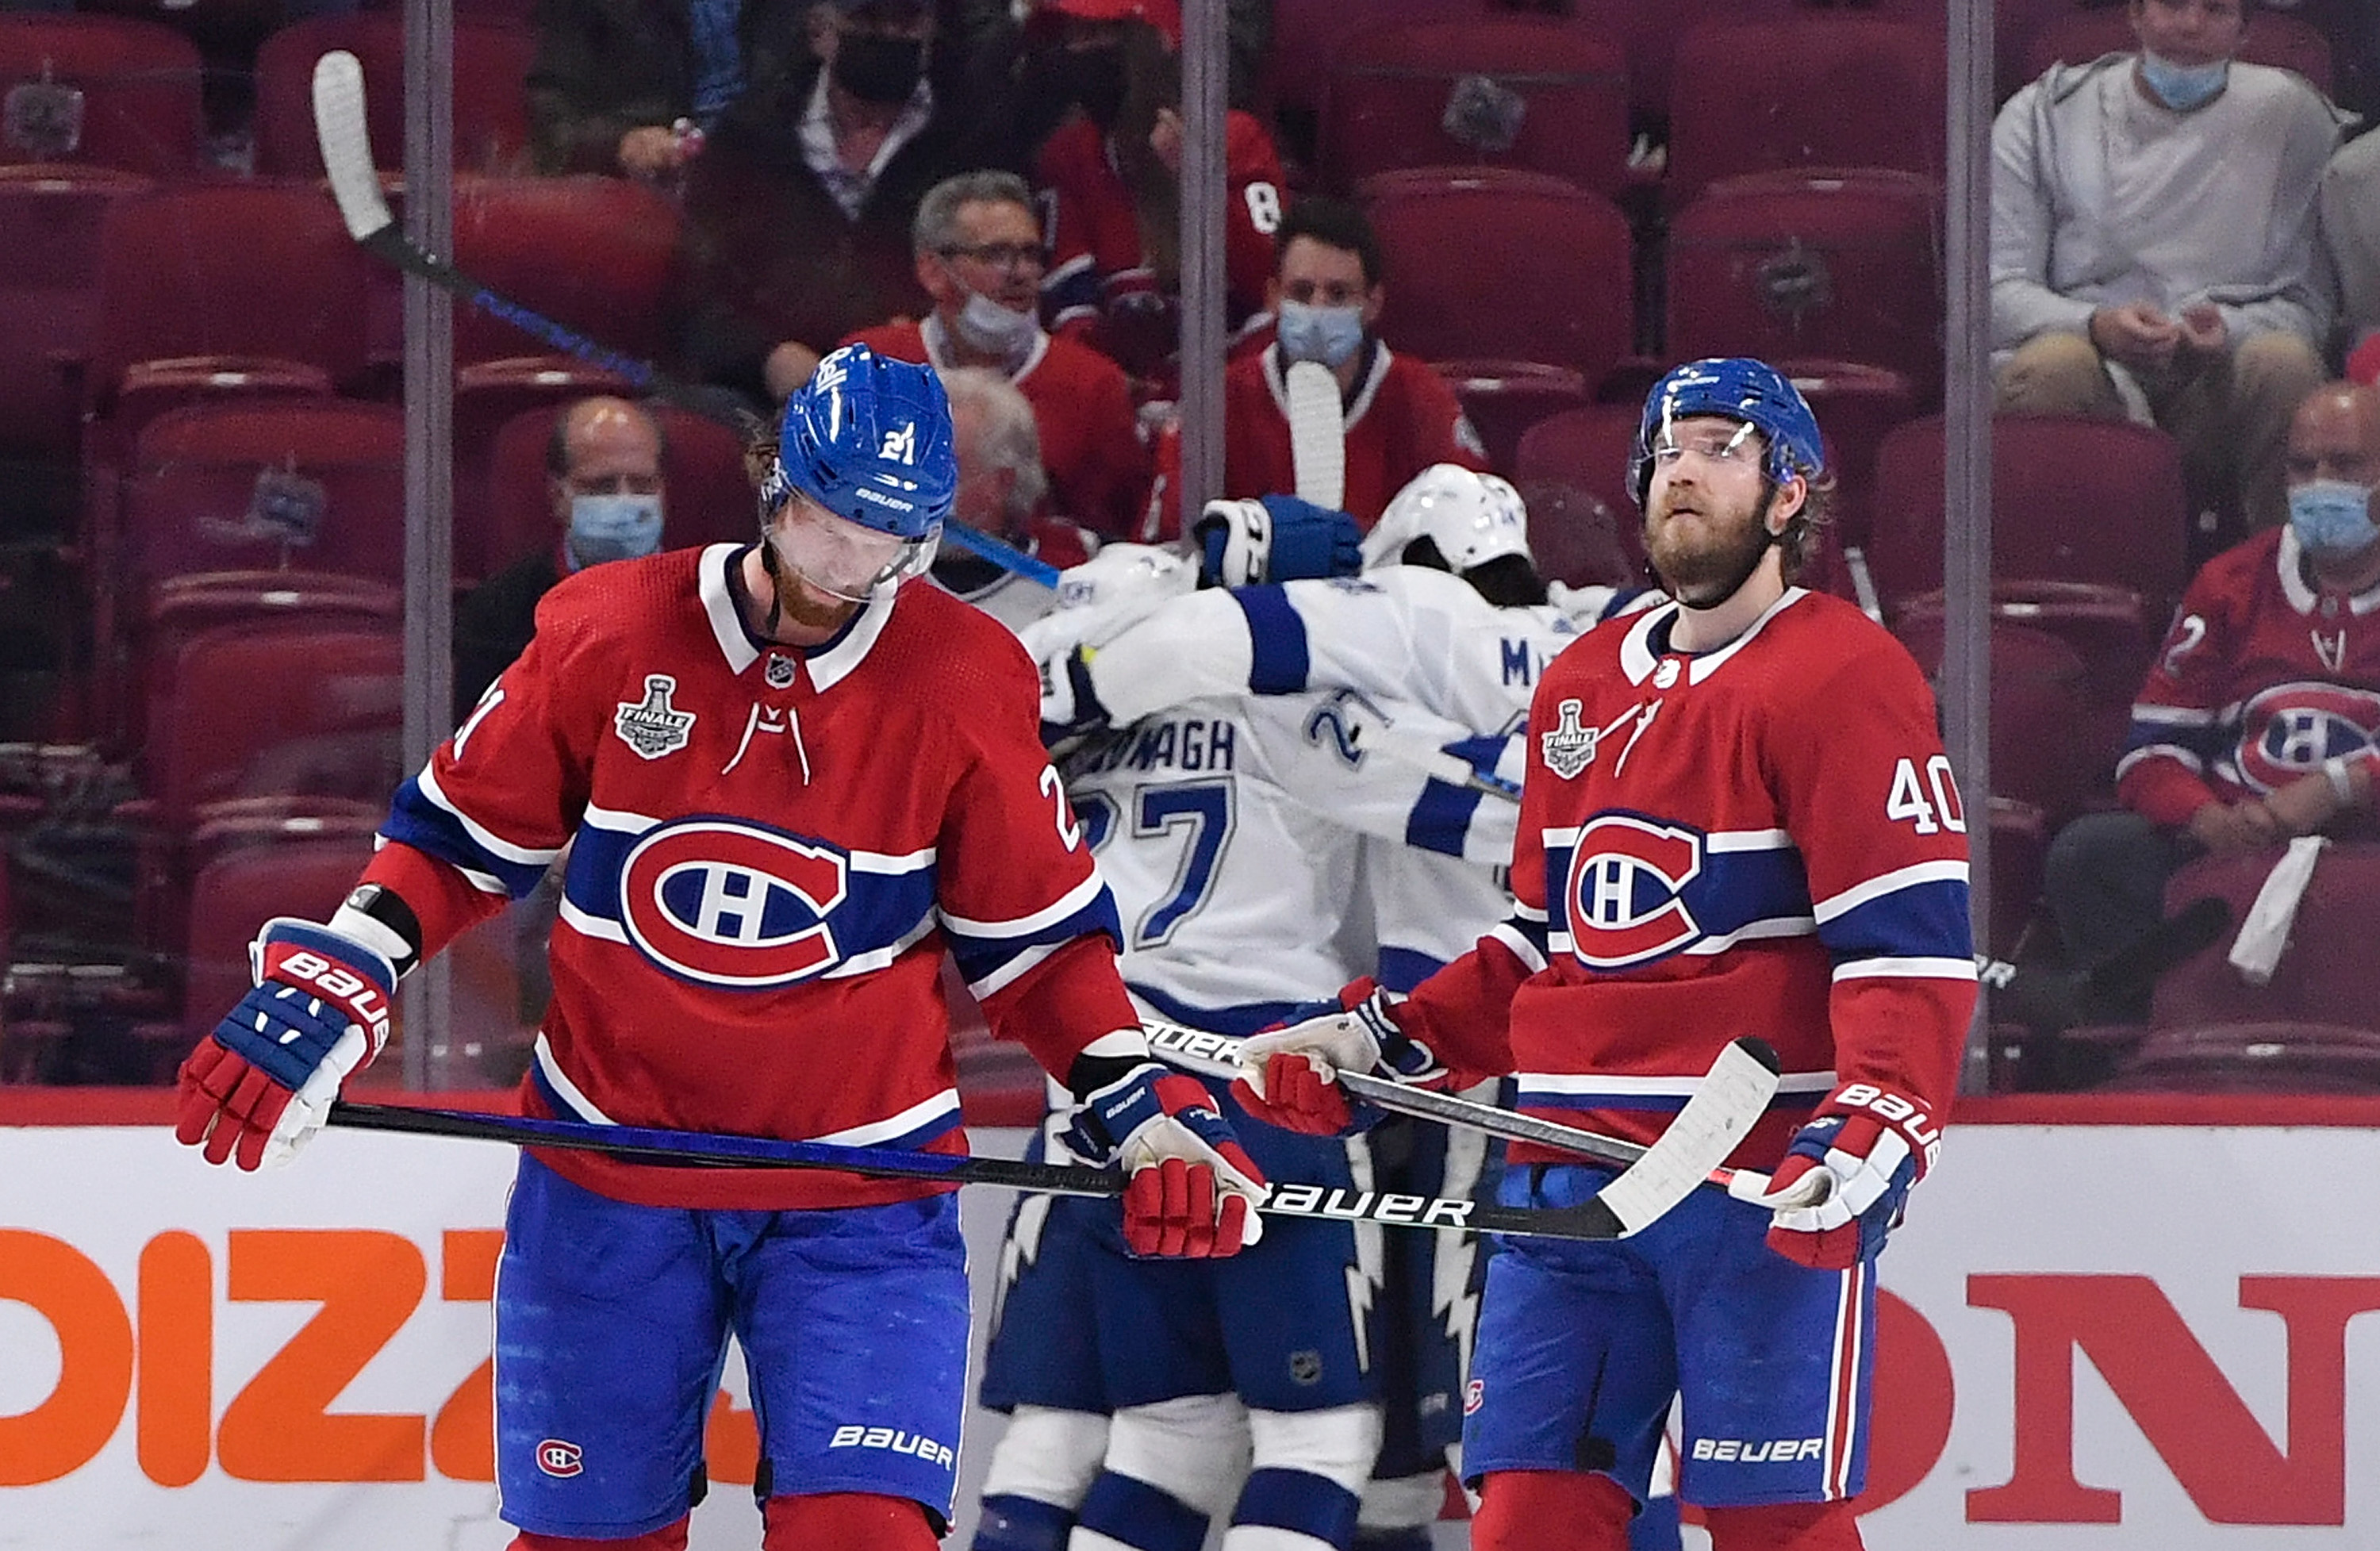 Tampa Bay Lightning center Tyler Johnson (9) is congratulated by teammates after scoring his second goal of the game as Montreal Canadiens center Eric Staal (21) and right wing Joel Armia (40) look on during the third period in game three of the 2021 Stanley Cup Final at the Bell Centre.